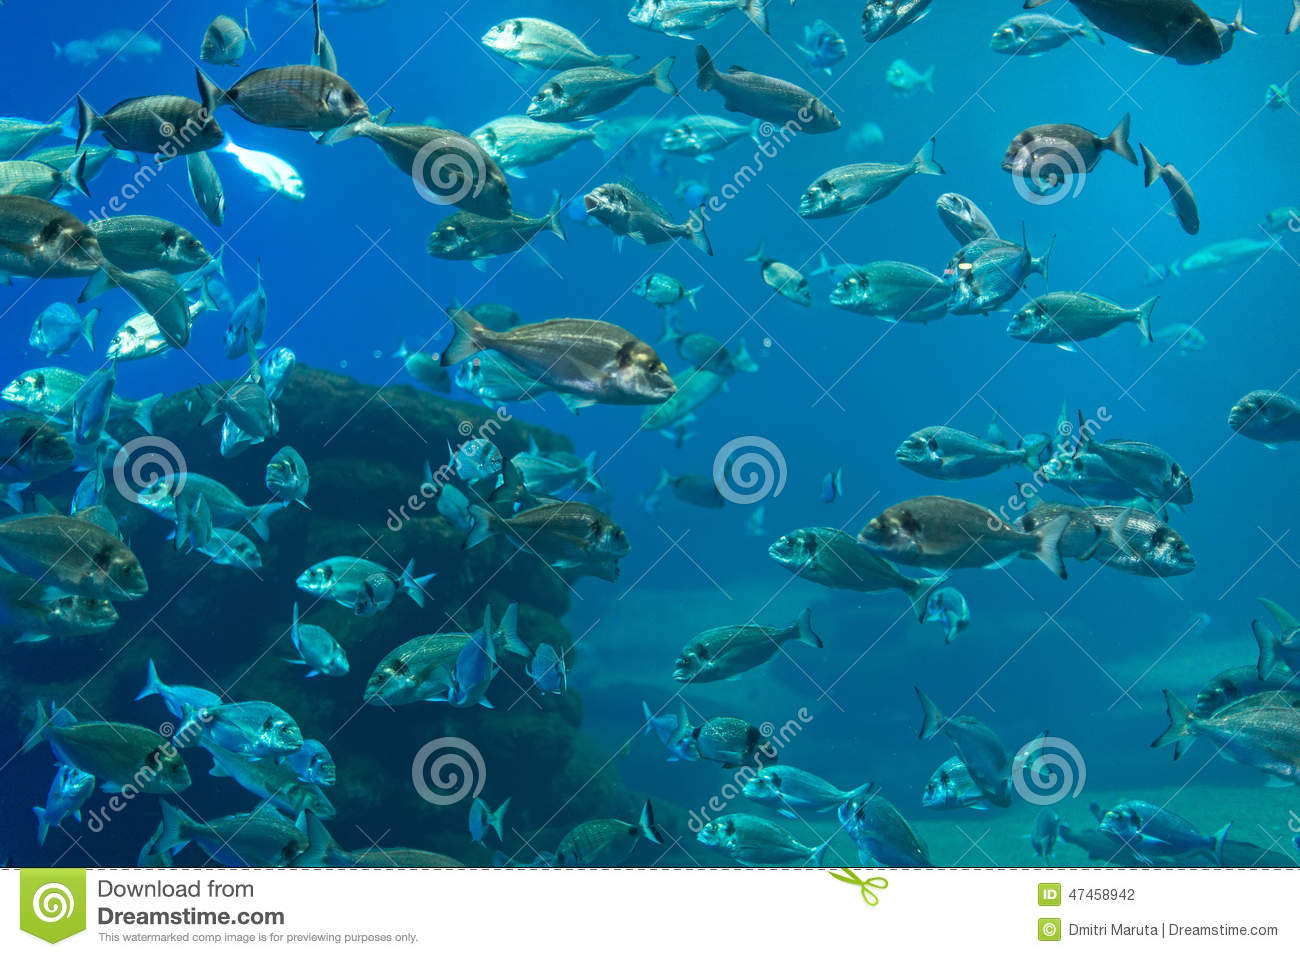 Plenty of fish stock photo image 47458942 for Planty of fish